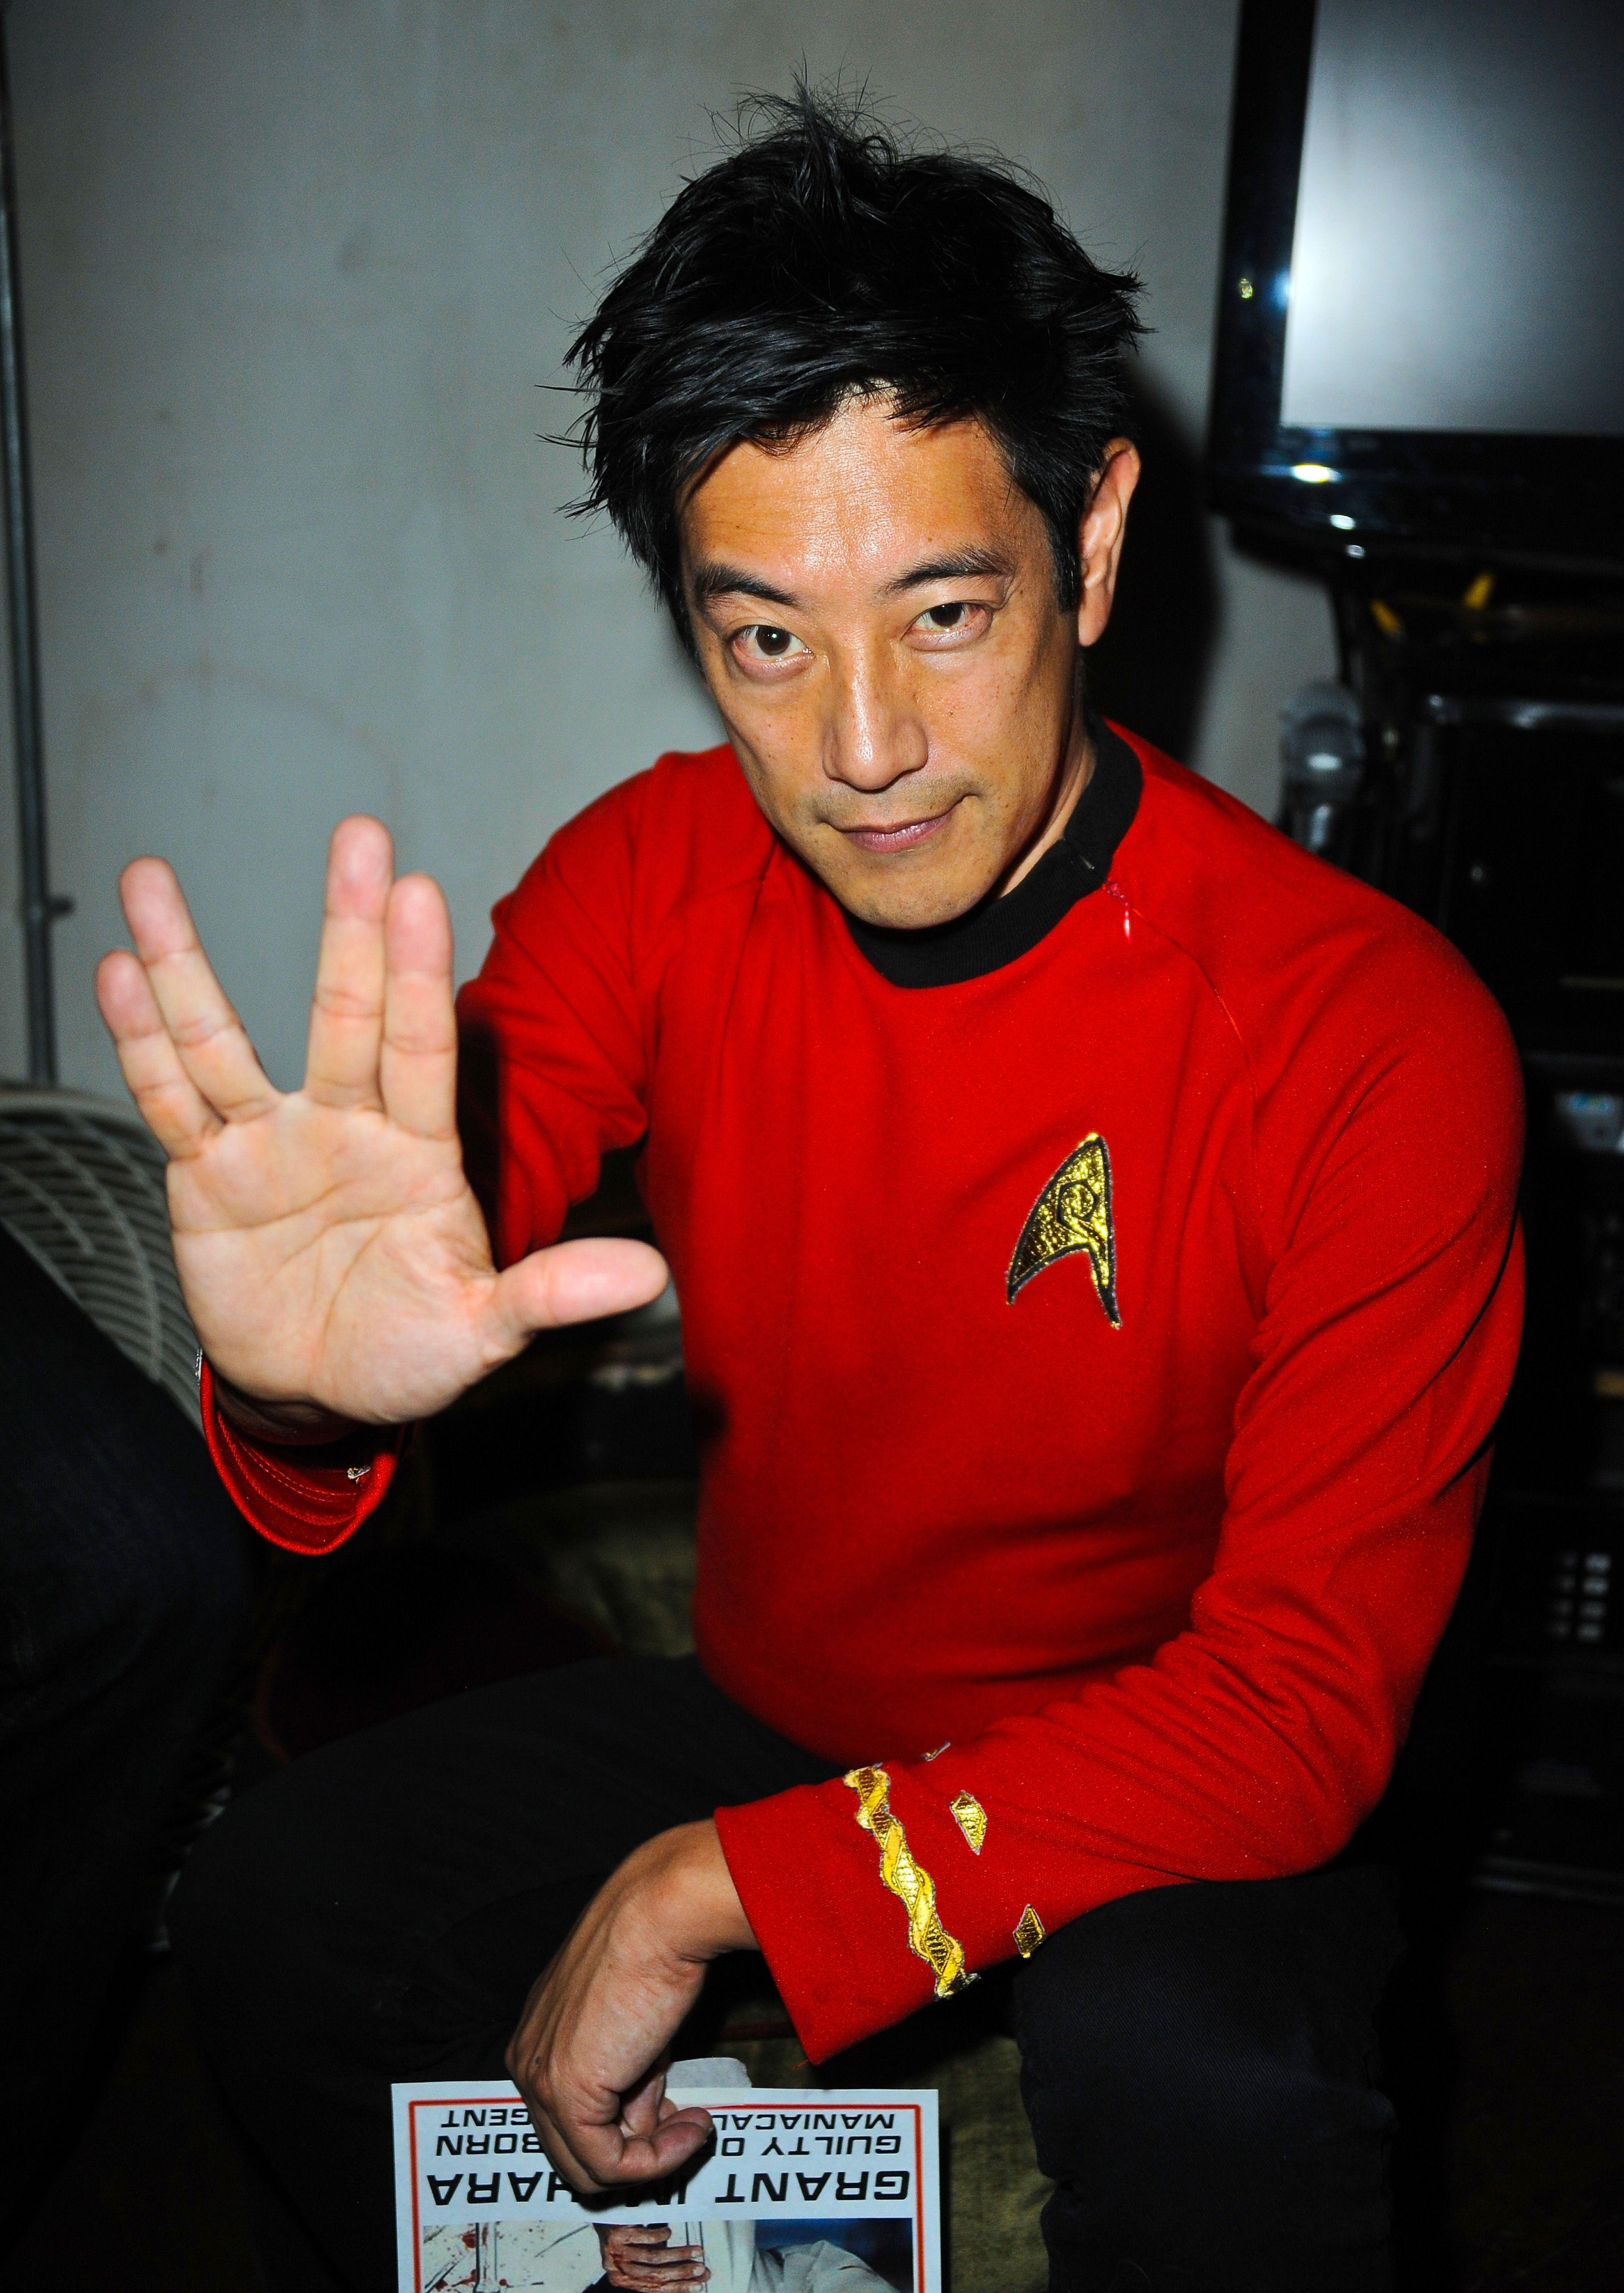 "<p>Grant Imahara, the electrical engineer and roboticist who co-hosted the popular science show <em>Mythbusters</em>, died on July 13 of a brain aneurysm. He was 49. </p><p> Discovery Communication shared the news of Imahara's death in a statement: ""We are heartbroken to hear this sad news about Grant. He was an important part of our Discovery family and a really wonderful man. Our thoughts and prayers go out to his family.""</p><p>Born and raised in Los Angeles, Imahara developed an early love for science fiction and engineering. His love of tinkering eventually took him to Lucasfilm, where he worked in the visual effects department for 9 years. While there, Imahara developed special effects for the Star Wars prequels, <em>The Matrix, Terminator 3: Rise of the Machines</em>, and other Hollywood films<em>.</em></p><p>Imahara became one of the lucky few officially trained to operate <em>Star Wars</em>'s famed droid, R2-D2, and developed the Energizer Bunny's rhythmic beat, which was featured heavily in the battery company's TV commercials. But Imahara is best known for his enduring work on <em>Mythbusters</em>. </p><p>In 2005, host Jaime Hyneman invited Imahara to join the show's ""build team."" Along with fellow builders Kari Byron and Tory Belleci, Imahara went on to design whimsical robots and debunked myths about sharks, flying guillotines, and nuclear blast-proof cockroaches. He stuck his head in a box of spiders, played tennis atop the wings of a bi-plane, and fashioned an underwater blow-dart. All for the love of science. </p><p>Imahara was a true robot fanatic. His robot <a href=""https://battlebots.fandom.com/wiki/Deadblow"" rel=""nofollow noopener"" target=""_blank"" data-ylk=""slk:Deadblow"" class=""link rapid-noclick-resp"">Deadblow</a>, which slashed mechanical competitors with a carbon-dioxide-powered pickaxe, often competed in Comedy Central's robotic competition show <em>BattleBots</em>. In 2010, <em>The Late Late Show</em> host Craig Ferguson tapped Imahara to develop a <a href=""https://www.popularmechanics.com/science/a5473/4350887/"" rel=""nofollow noopener"" target=""_blank"" data-ylk=""slk:robot sidekick"" class=""link rapid-noclick-resp"">robot sidekick</a>, which they named Geoff Peterson. Imahara described some of the challenges of developing the iPad-controlled robot in <a href=""https://www.popularmechanics.com/science/a5983/mythbusters-at-san-diego-comic-con-video/"" rel=""nofollow noopener"" target=""_blank"" data-ylk=""slk:a 2010 interview"" class=""link rapid-noclick-resp"">a 2010 interview</a> with <em>Popular Mechanics</em>.</p><p>In 2016, Imahara, Byron, and Belleci began working on a Netflix series called <em>White Rabbit Project</em>. The trio explored the science and engineering behind famous jailbreaks, hoverboards, and World War II's most infamous weapons. After Netflix canceled the show following its first season, Imahara <a href=""https://twitter.com/grantimahara/status/1012399165303934976"" rel=""nofollow noopener"" target=""_blank"" data-ylk=""slk:returned to the world of special effects"" class=""link rapid-noclick-resp"">returned to the world of special effects</a>, working with Disney to create autonomous robotic stunt doubles.</p><p>Imahara truly embodied the spirit of <em>Popular Mechanics</em>. His ingenuity, creativity, and unwavering love of science has served as an inspiration to us all—and now we feel a major <em>MythBusters</em> binge coming on. To honor Imahara's legacy, enjoy 10 of his best <em>MythBusters</em> moments.</p>"